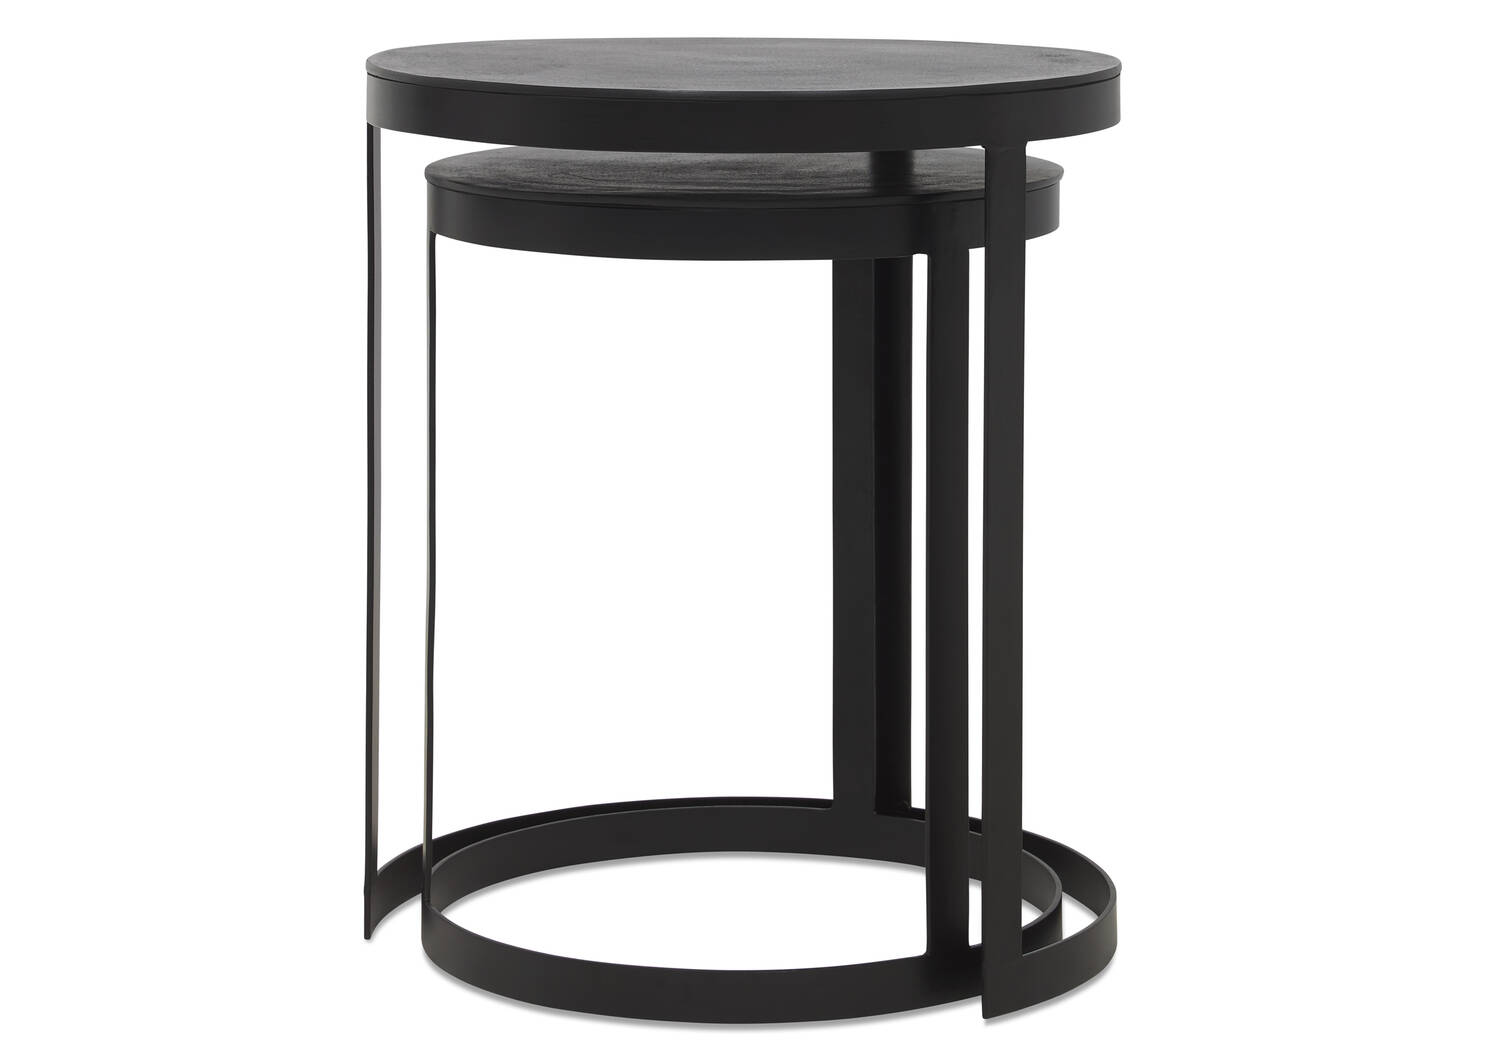 Tables d'appoint gigognes Irwin -bronze